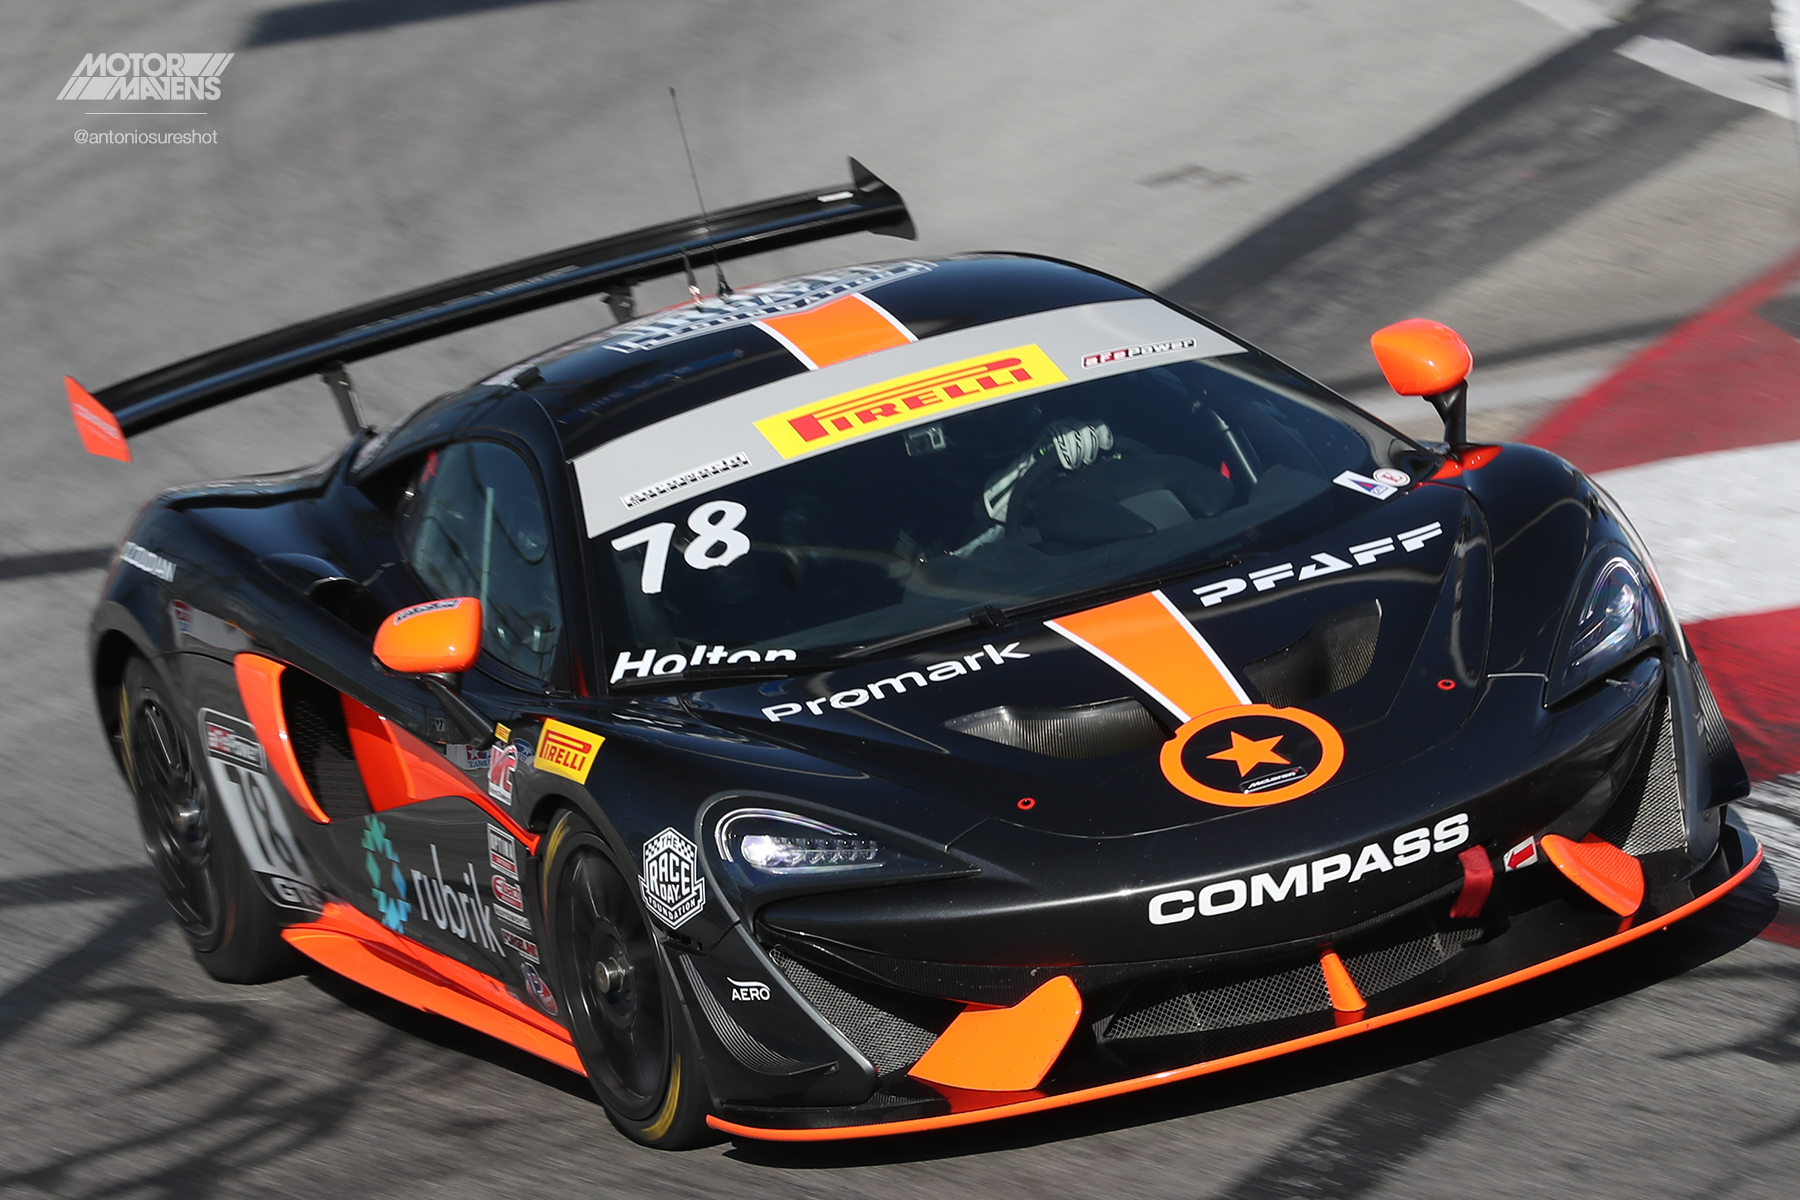 Pirelli World Challenge, Long Beach Grand Prix, Pirelli, Compass Racing, McLaren 570S, McLaren